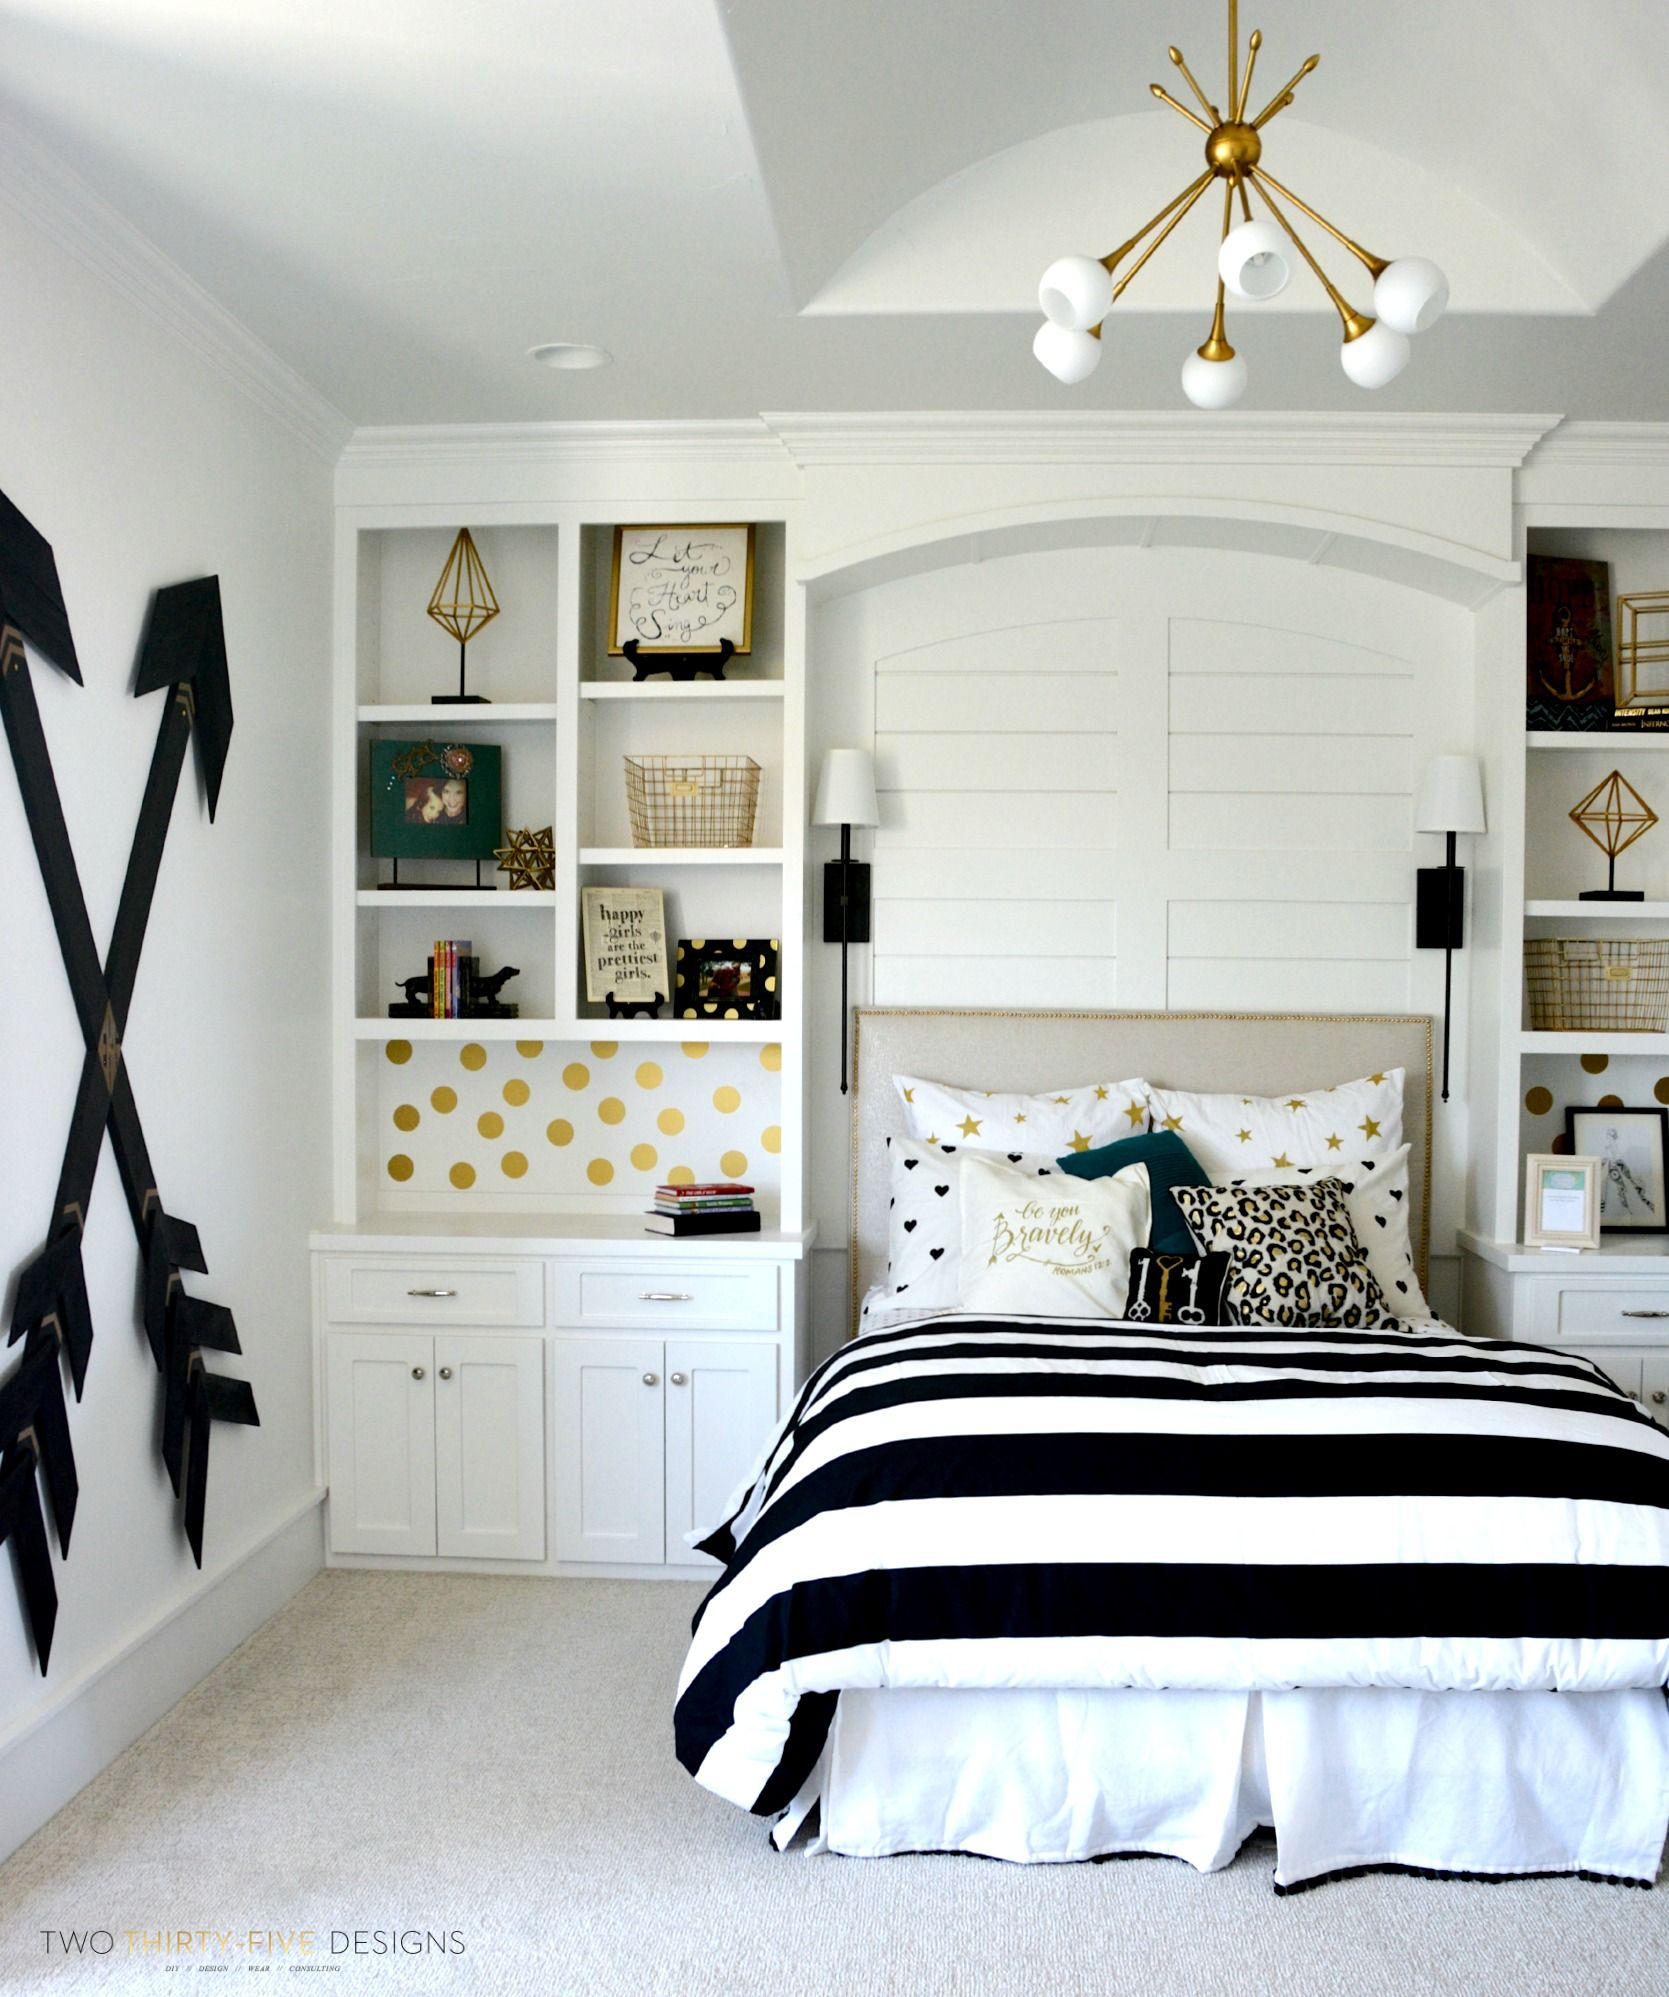 Black and white bedrooms with a splash of color - Pottery Barn Teen Girl Bedroom With Wooden Wall Arrows By Two Thirty Five Designs